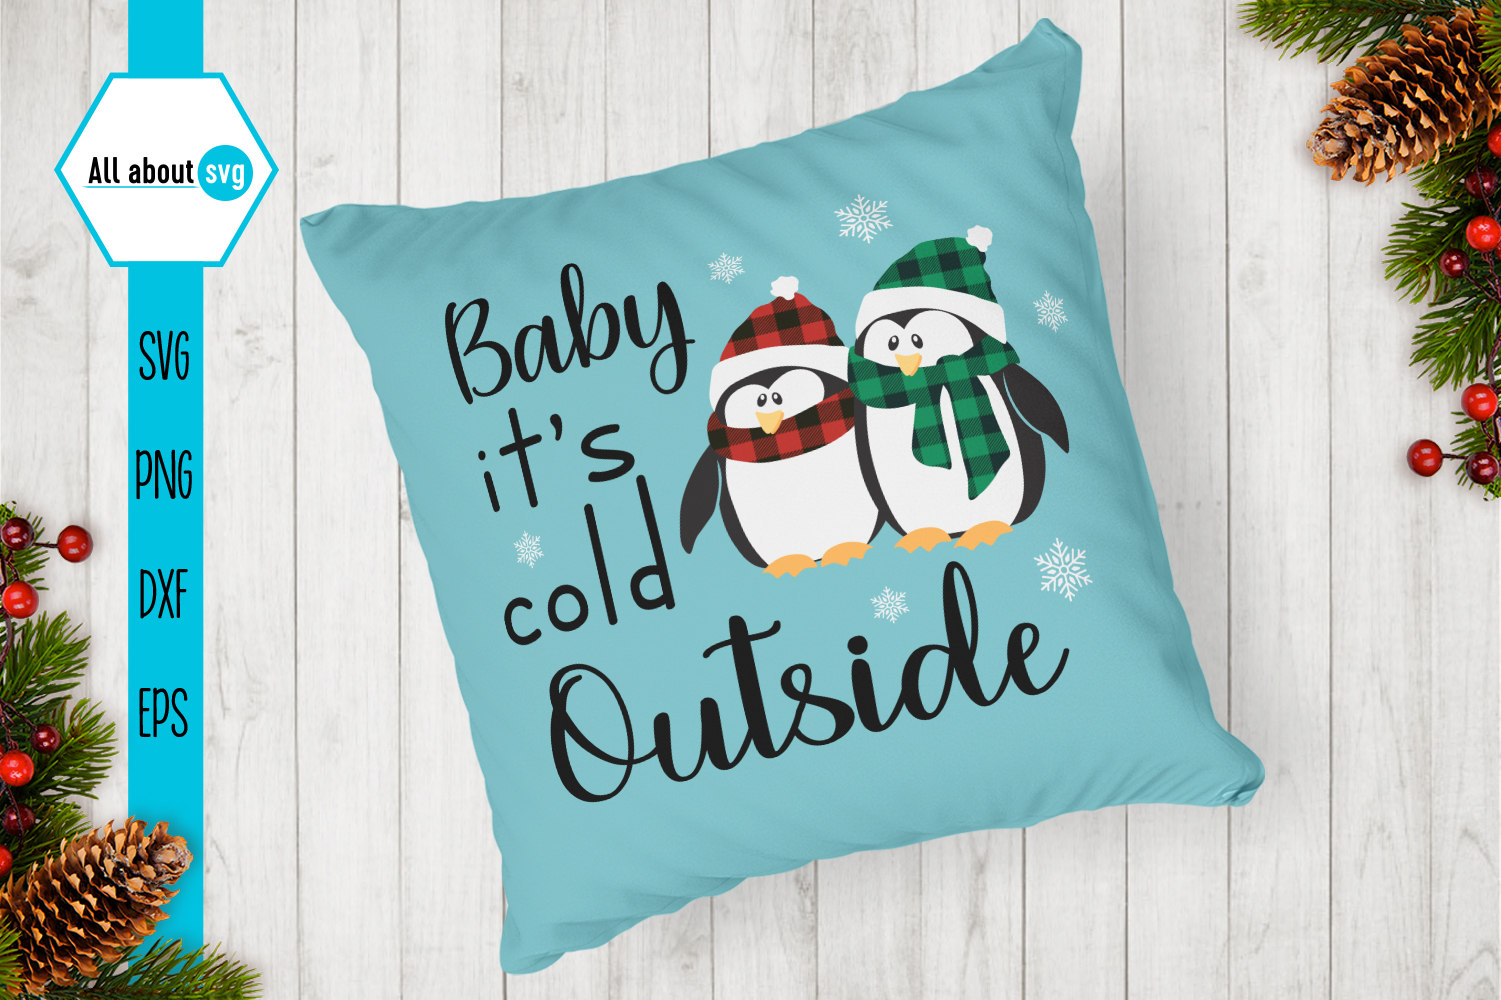 Baby it's cold outside SVG example image 4